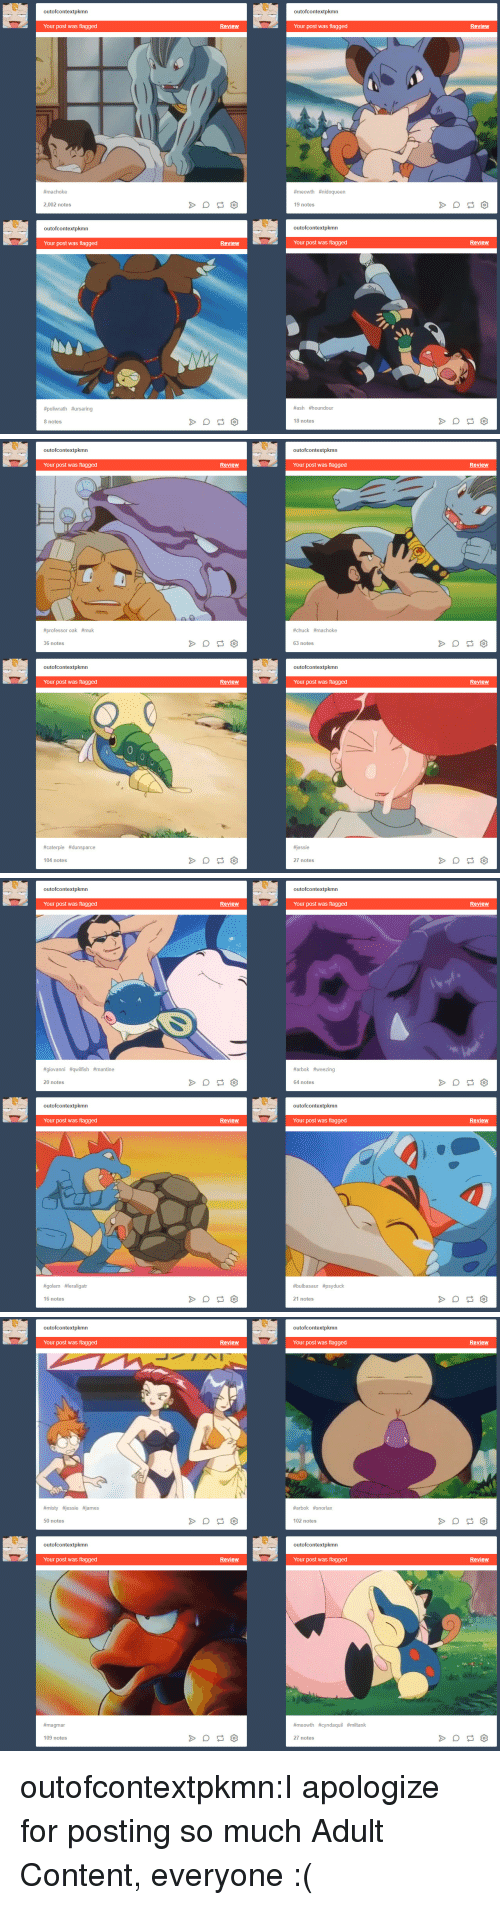 Ames: outofcontextpkmn  outofcontextpkmn  Your post was flagged  Review  Your post was flagged  Review  #ma choke  #meowth #nidoqueen  2,002 notes  19 notes  outofcontextpkmn  outofcontextpkmn  Your post was flagged  Review  Your post was flagged  Review  #poliwrath #ursaring  #ash #houndour  8 notes  18 notes   outofcontextpkmn  outofcontextpkmn  Review  Review  Your post was flagged  Your post was flagged  #chuck #machoke  #professor oak #muk  63 notes  36 notes  outofcontextpkmn  outofcontextpkmn  Review  Review  Your post was flagged  Your post was flagged  essie  #caterpie #dunsparce  27 notes  104 notes   outofcontextpkmn  outofcontextpkmn  Your post was flagged  Review  Your post was flagged  Review  #giovanni #qwifish #mantine  #arbok #weezing  20 notes  64 notes  outofcontextpkmn  outofcontextpkmn  Your post was flagged  Review  Your post was flagged  Review  #golem #feraligatr  #bulbasaur #psyduck  16 notes  21 notes   outofcontextpkmn  outofcontextpkmn  Your post was flagged  Review  Your post was flagged  Review  #místy #jessie ames  #arbok #snorlax  50 notes  102 notes  outofcontextpkmn  outofcontextpkmn  Your post was flagged  Review  Your post was flagged  Review  #magmar  #meowth #cyndaquil #miltank  109 notes  27 notes outofcontextpkmn:I apologize for posting so much Adult Content, everyone :(